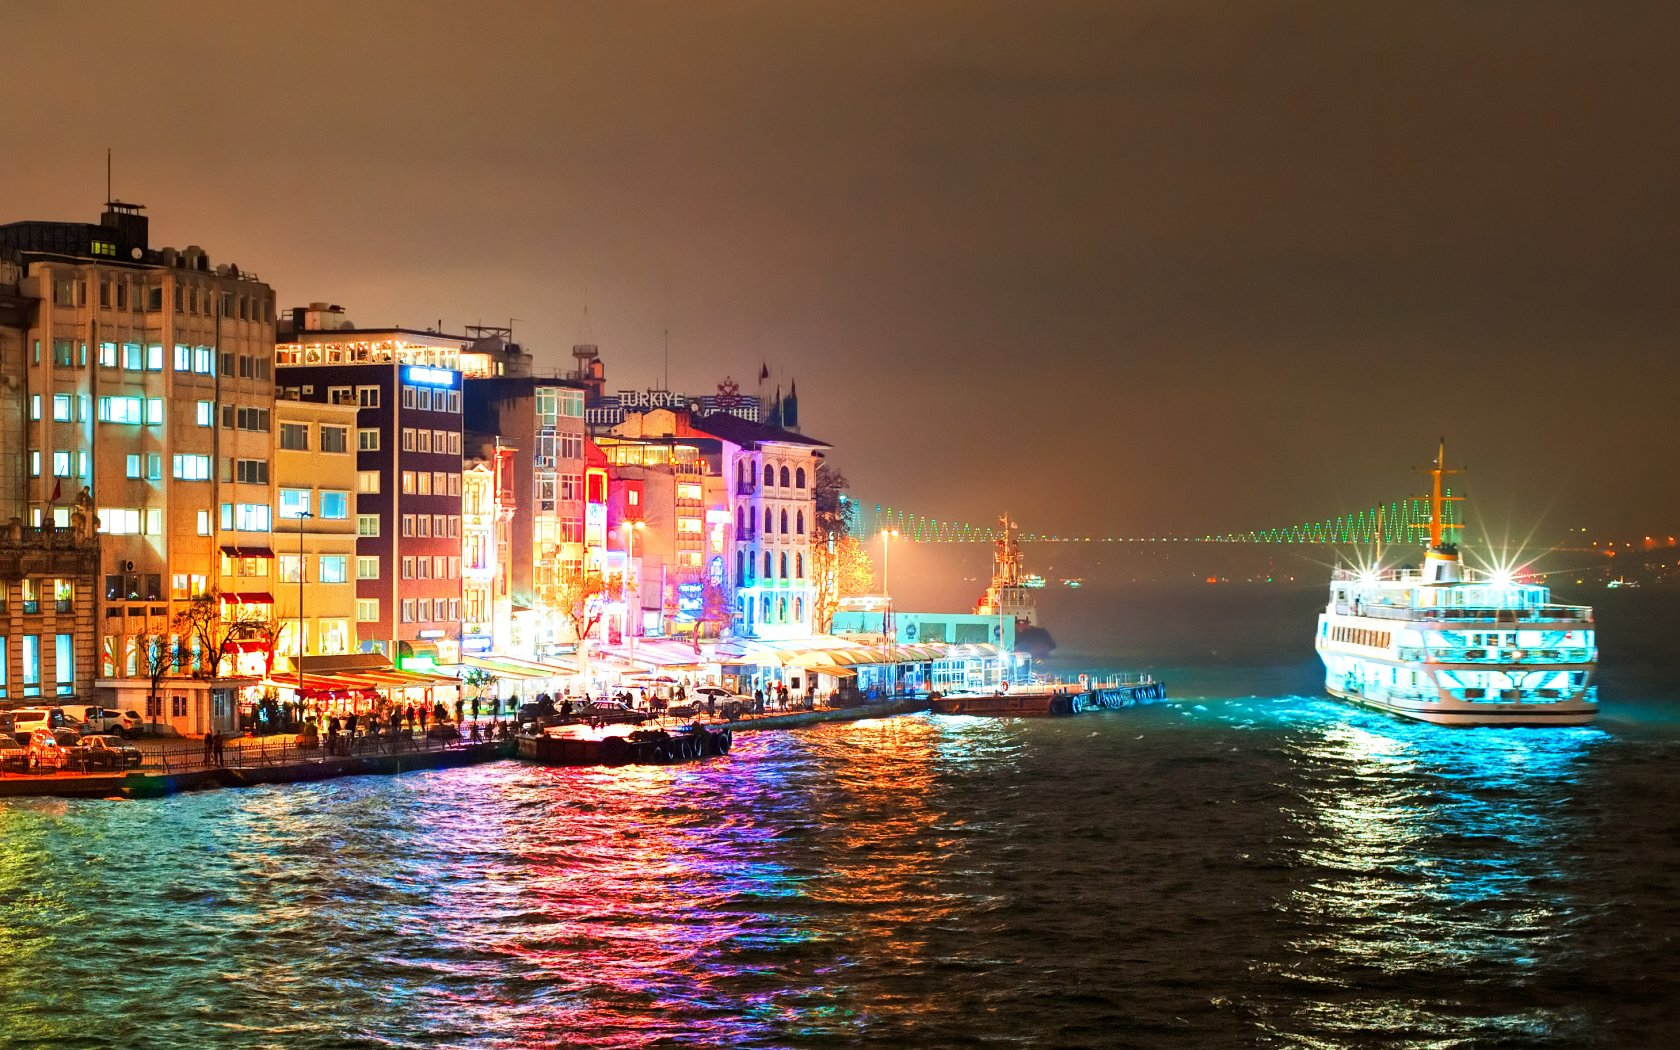 Istanbul at night